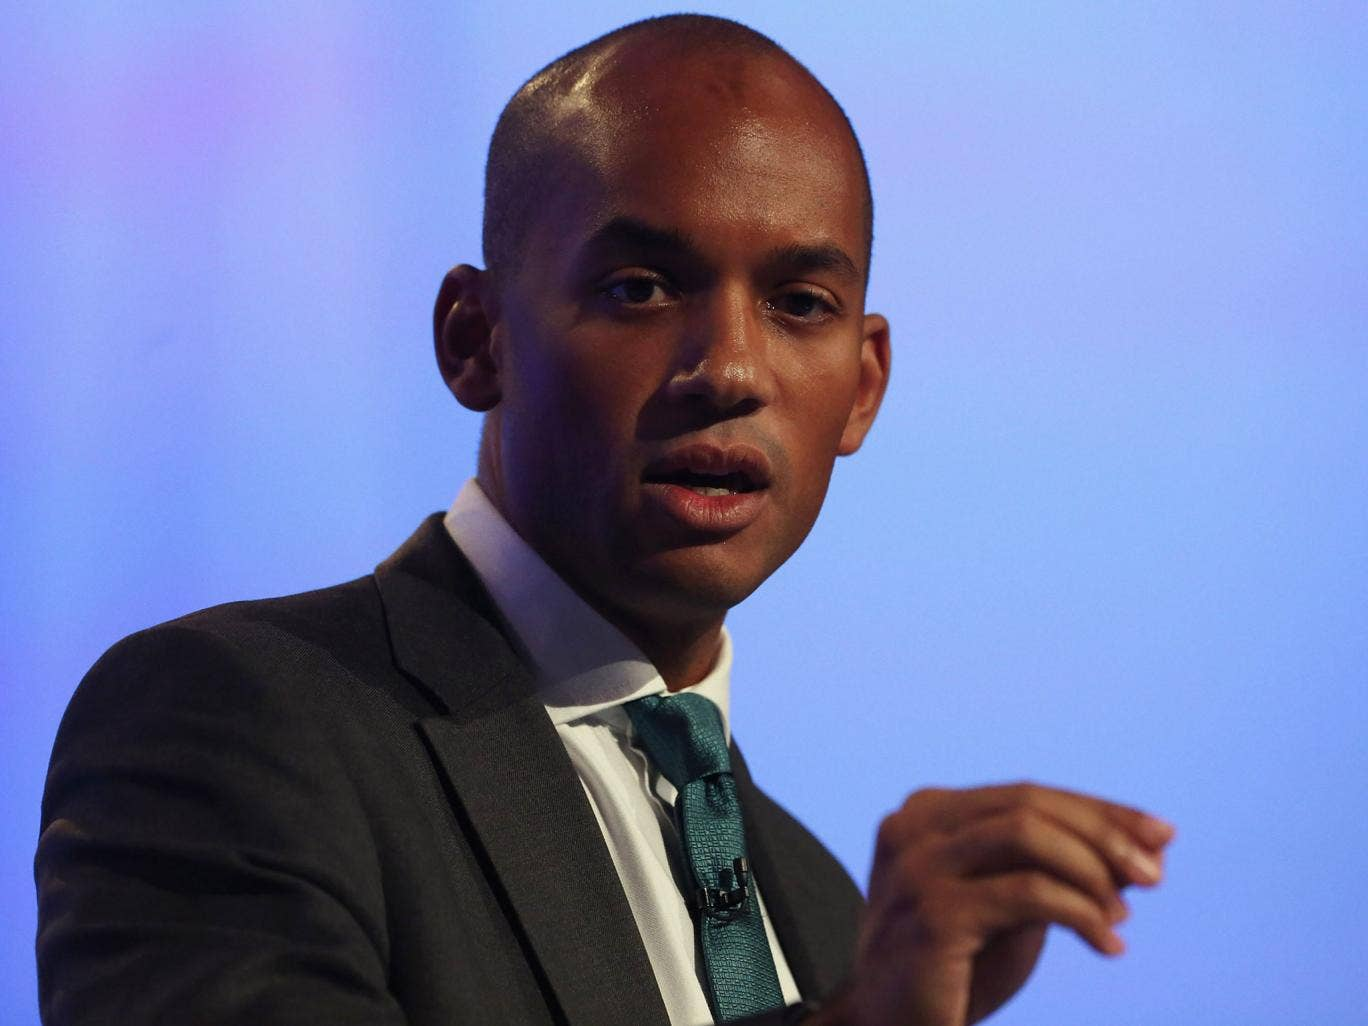 One to watch: Chuka Umunna, even though he divides people